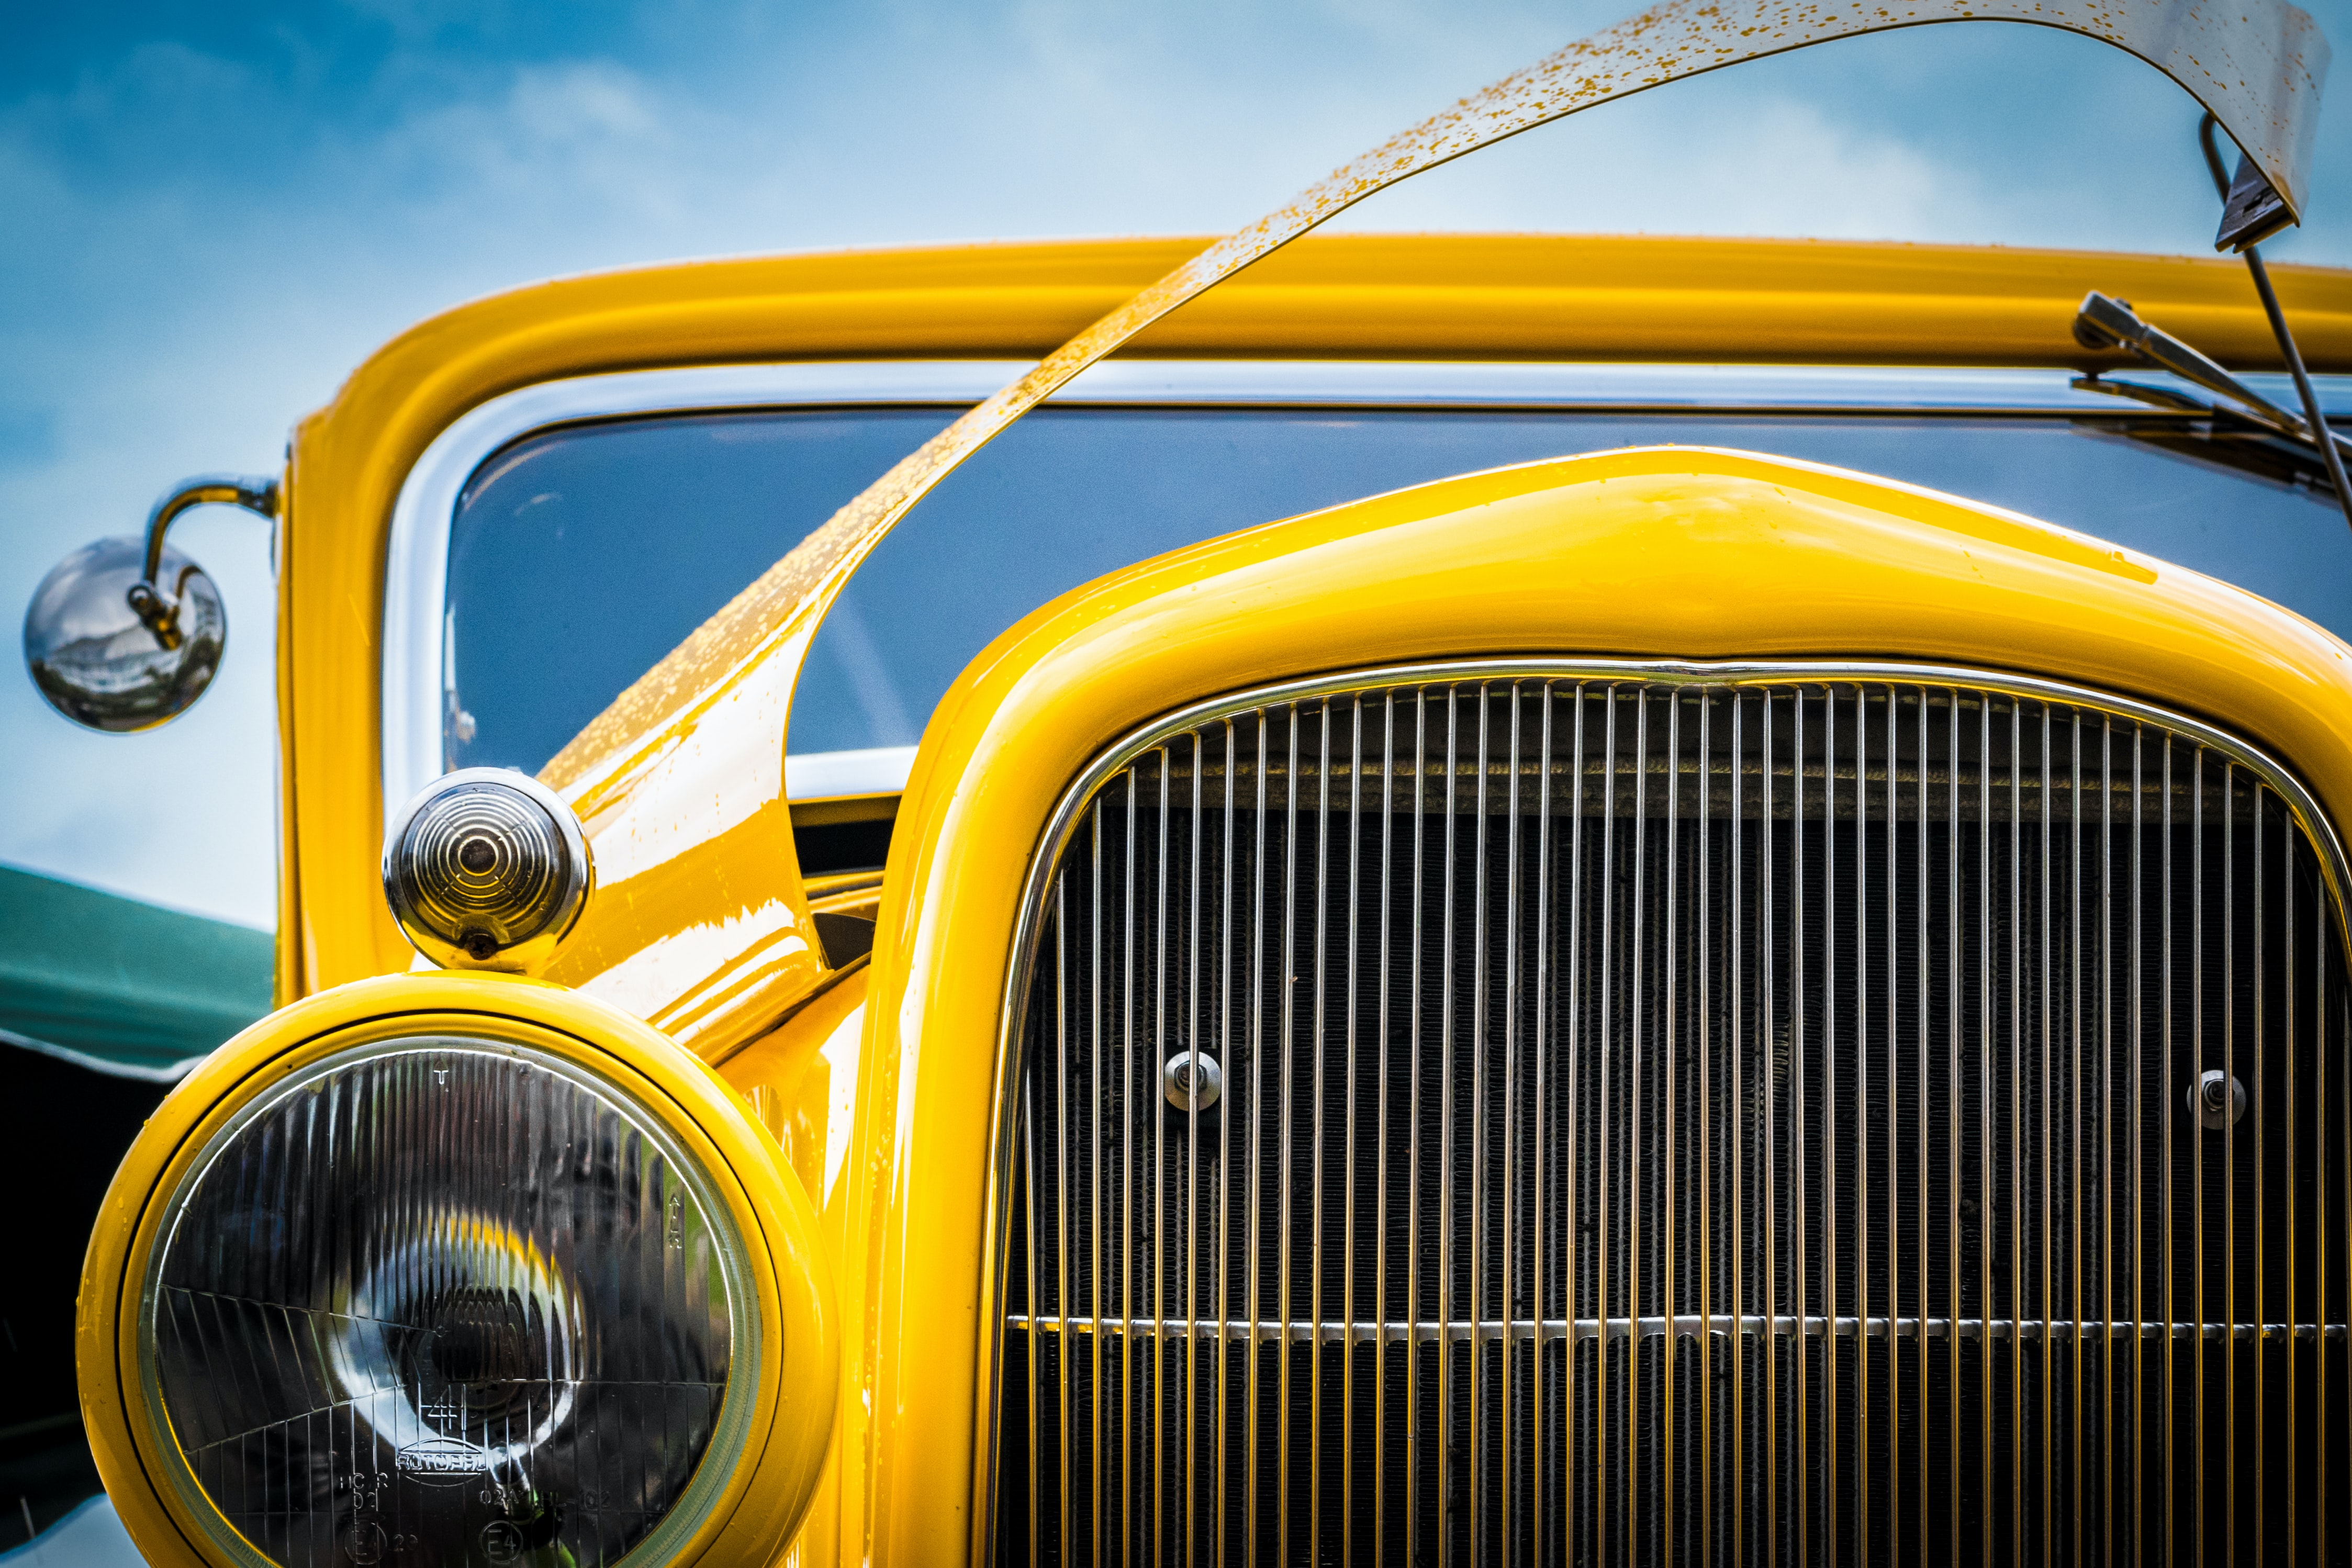 Front view of the yellow oldtimer vintage car headlight, grille, and an opened bonnet